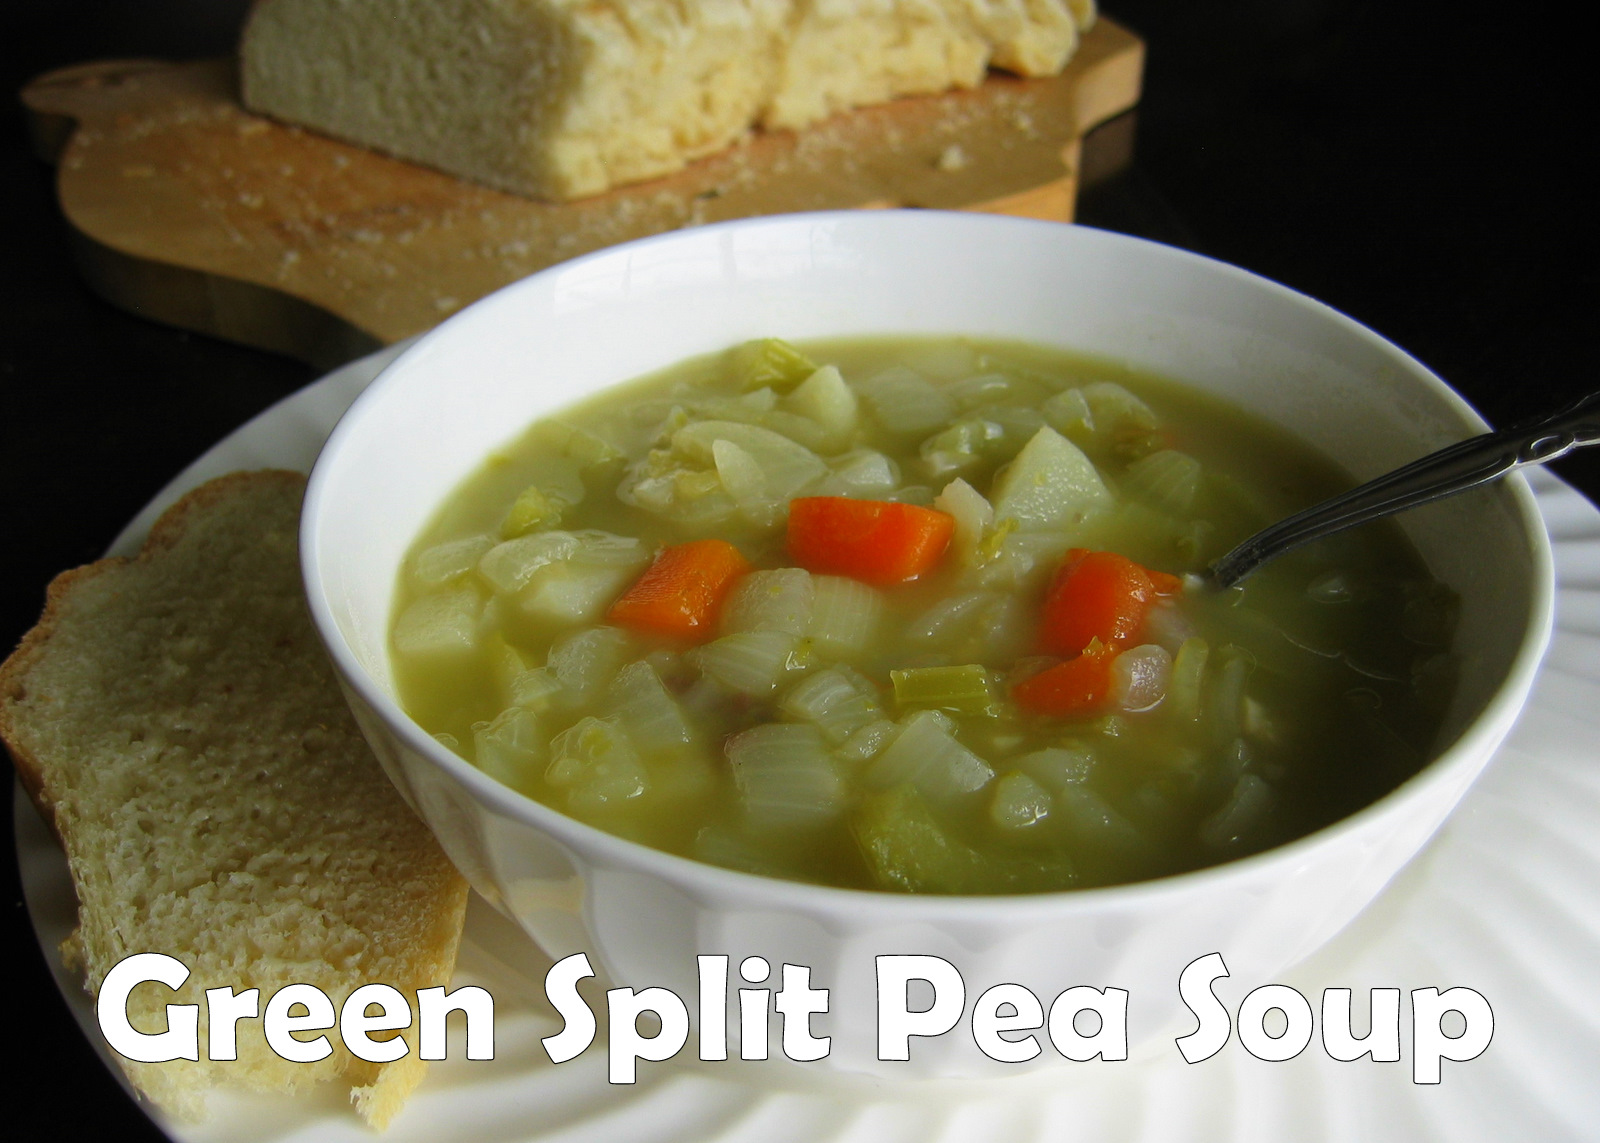 green split pea soup 1 1 4 cups green split peas ham hock or 1 2 cup ...